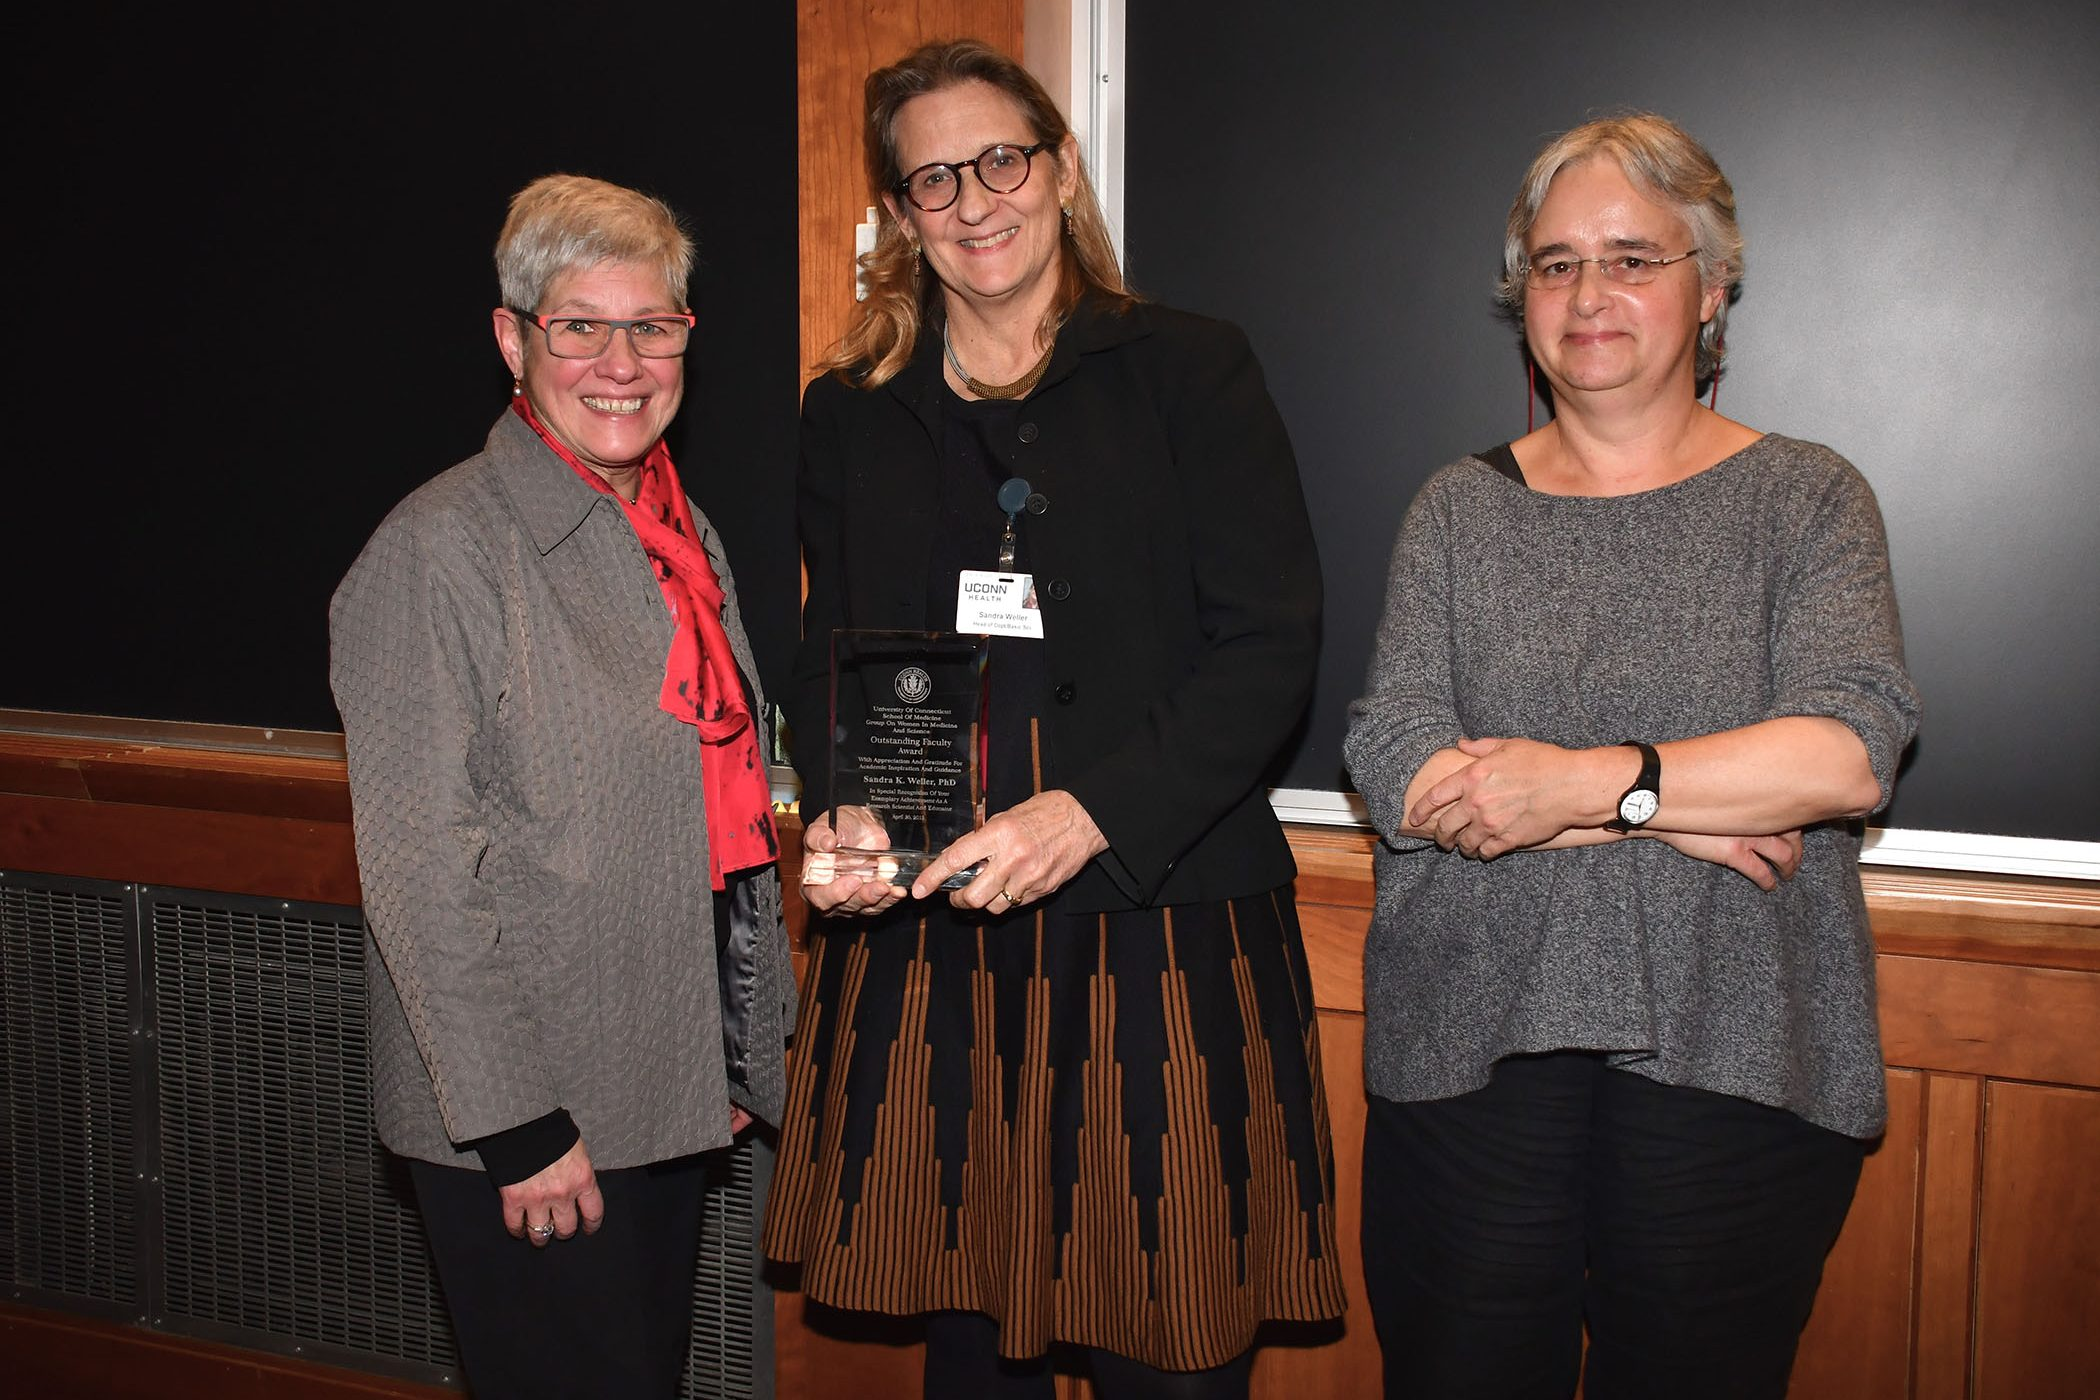 Judith D. Singer, Ph.D., Sandra Weller, Ph.D., and Laurinda Jaffe, Ph.D.